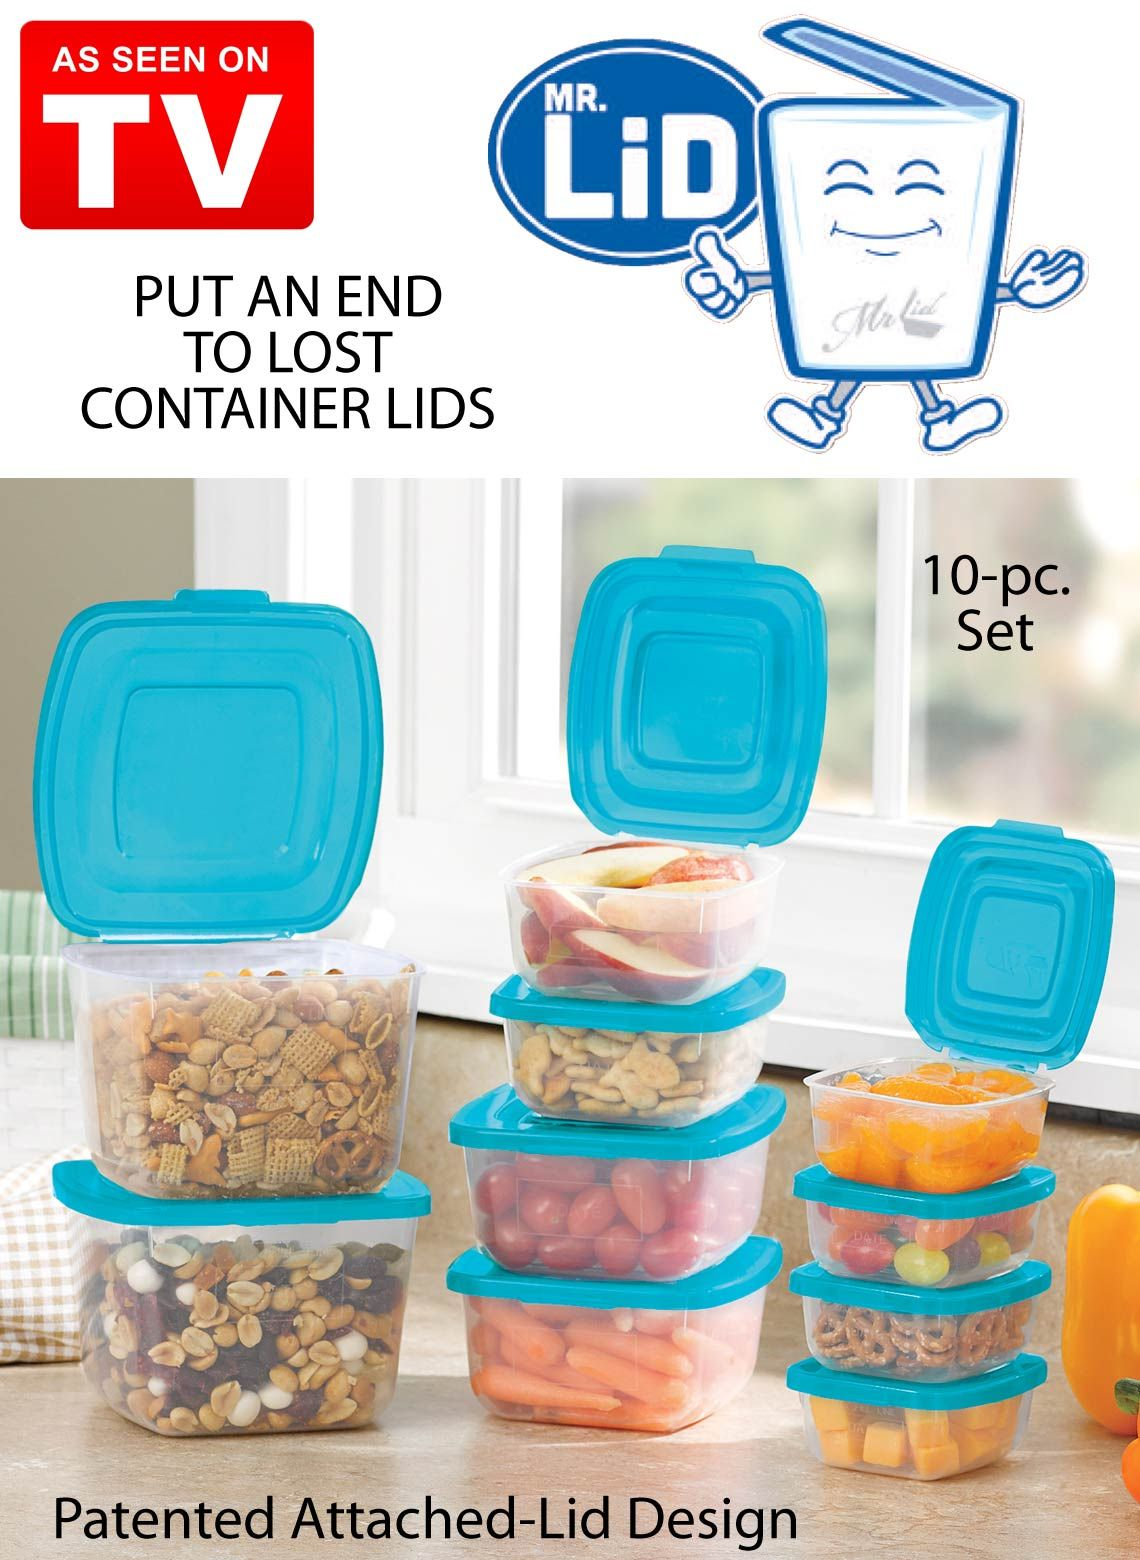 Simplify Your Kitchen With The Food Storage System That Saves You Time And E These